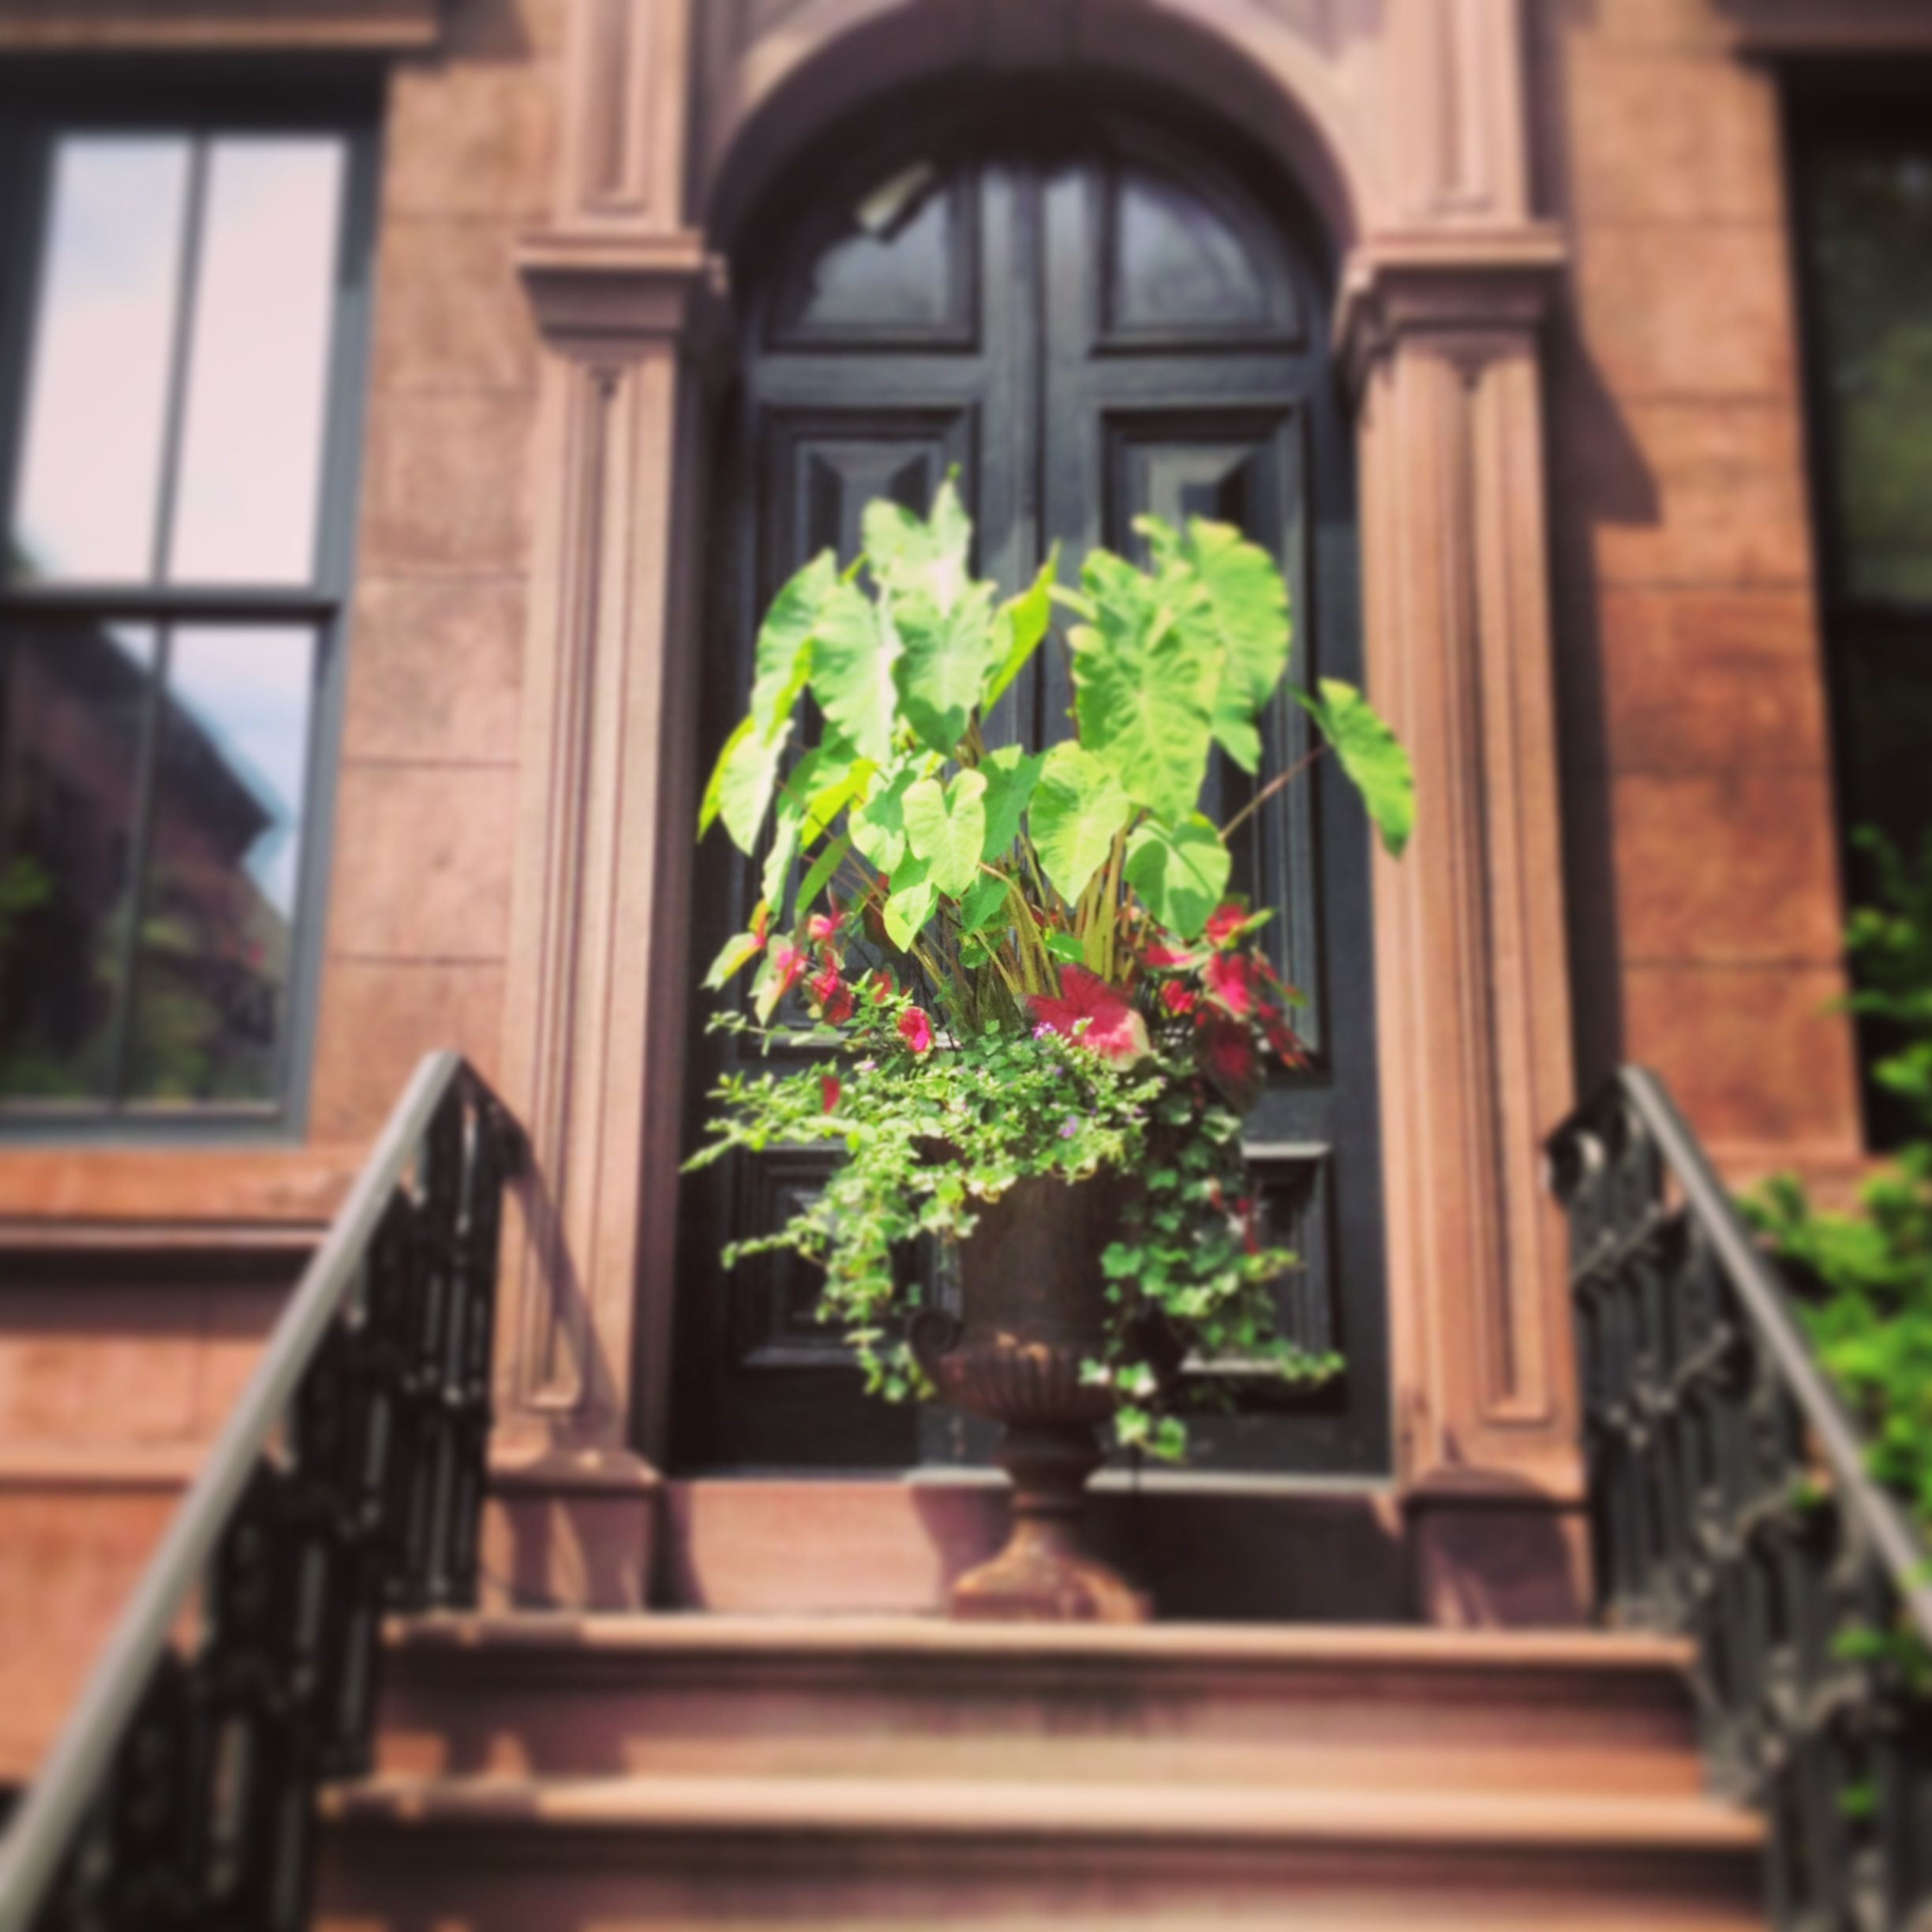 West Village Townhouse - beautiful urn planting. Corner of Charles & West 4th Streets, NYC.